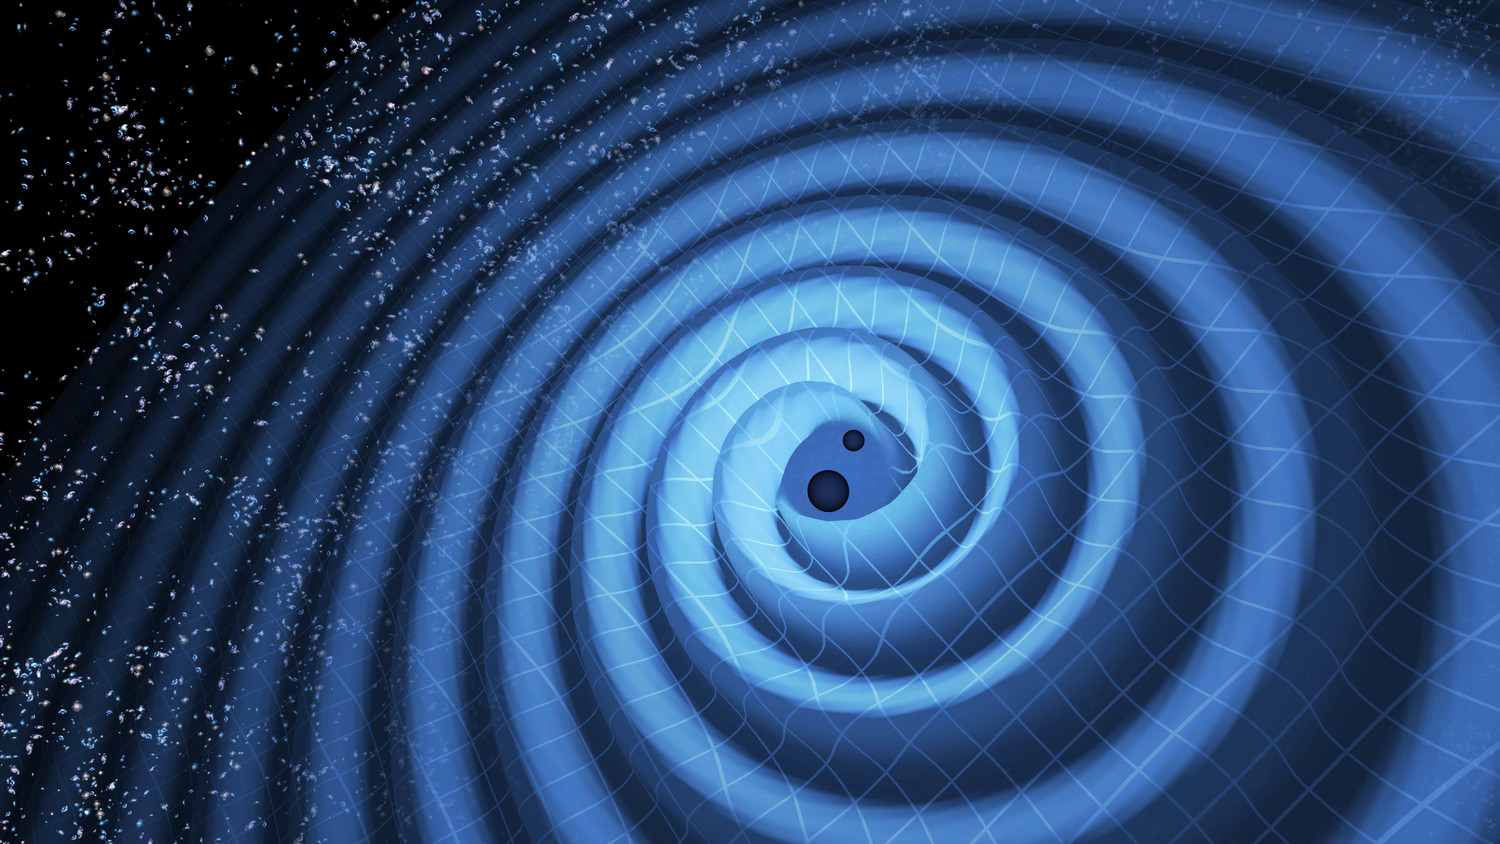 Illustration of the merger of two black holes and the gravitational waves that ripple outward as the black holes spiral toward each other.